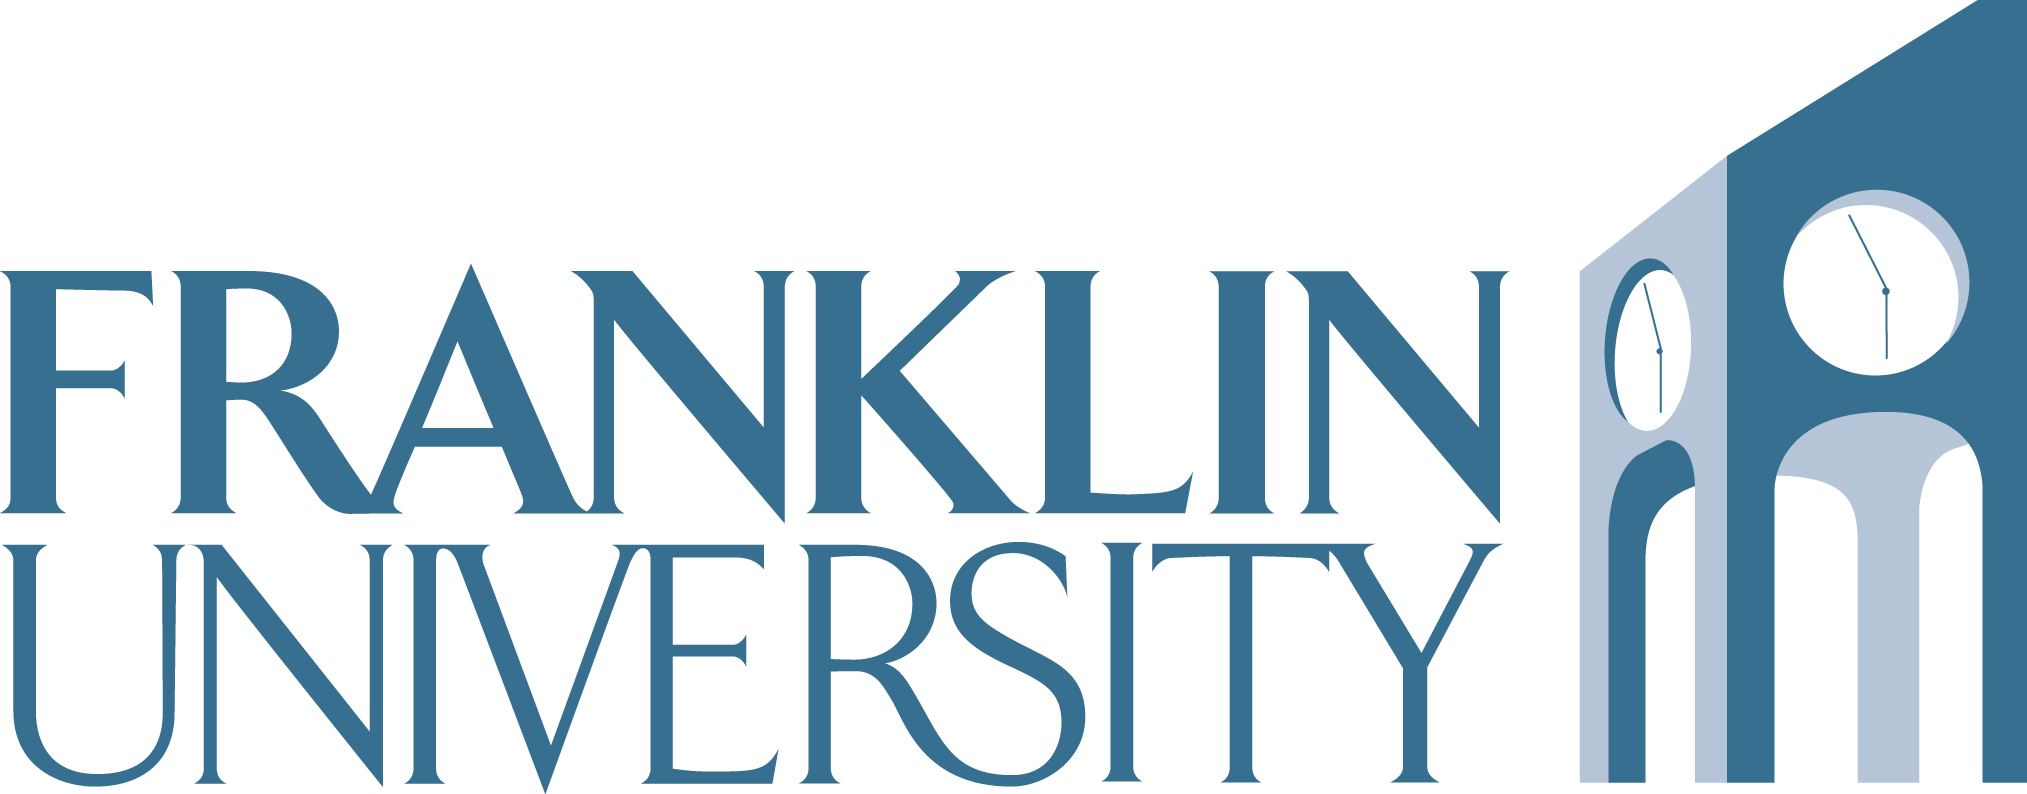 About Franklin University | Franklin University's Cyber Defense Program Recognized by Homeland Security